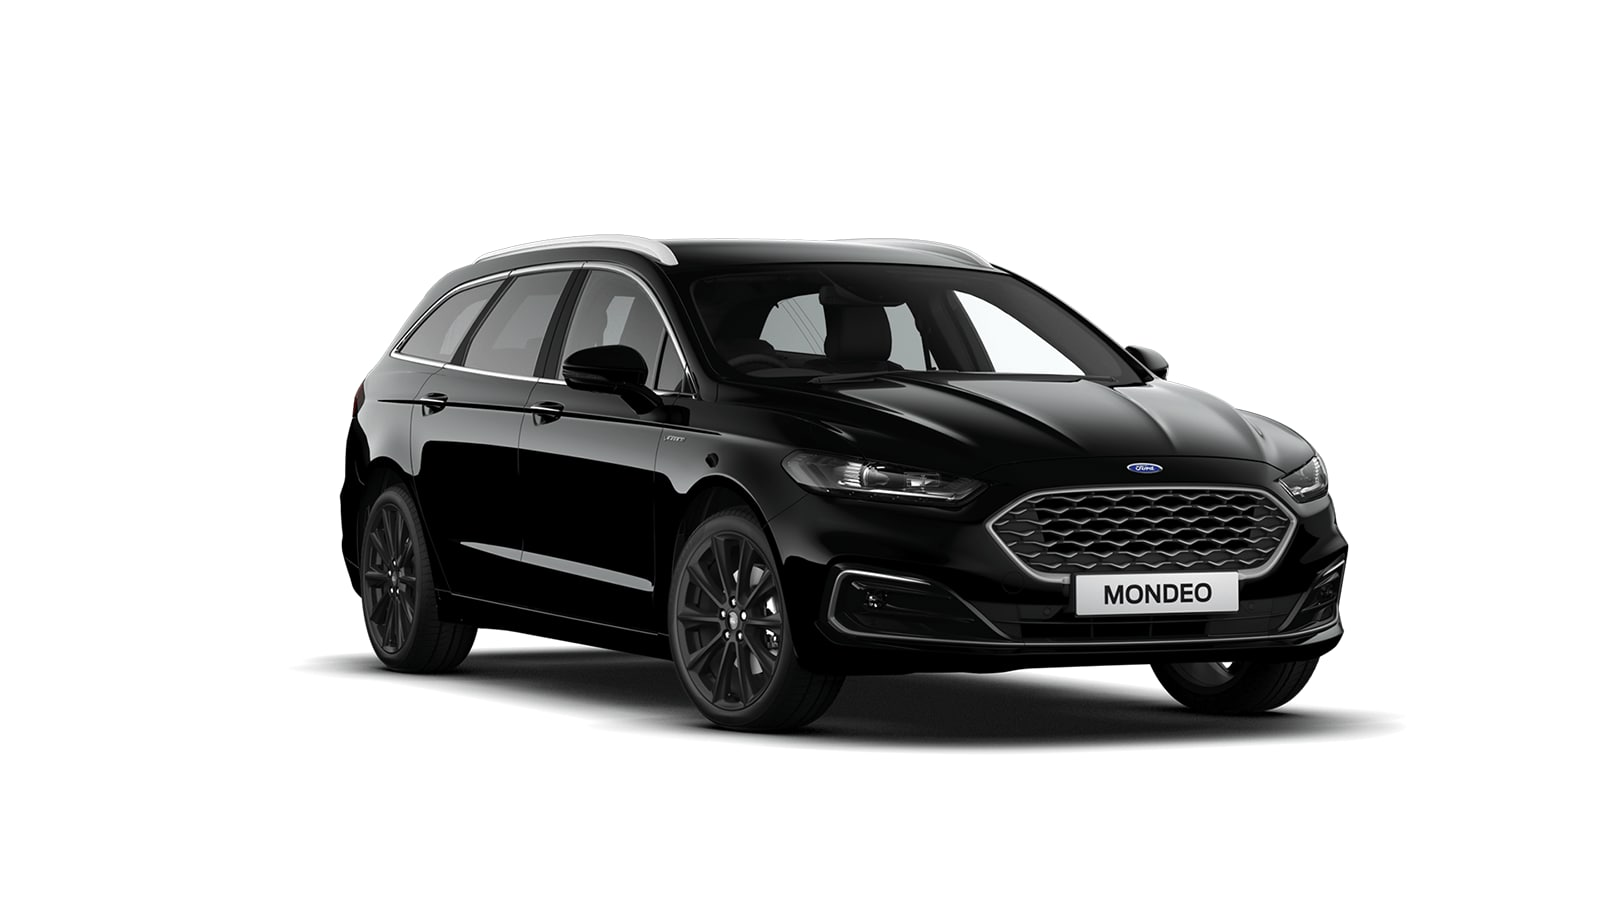 New Ford NEW MONDEO HYBRID at Westaway Motors